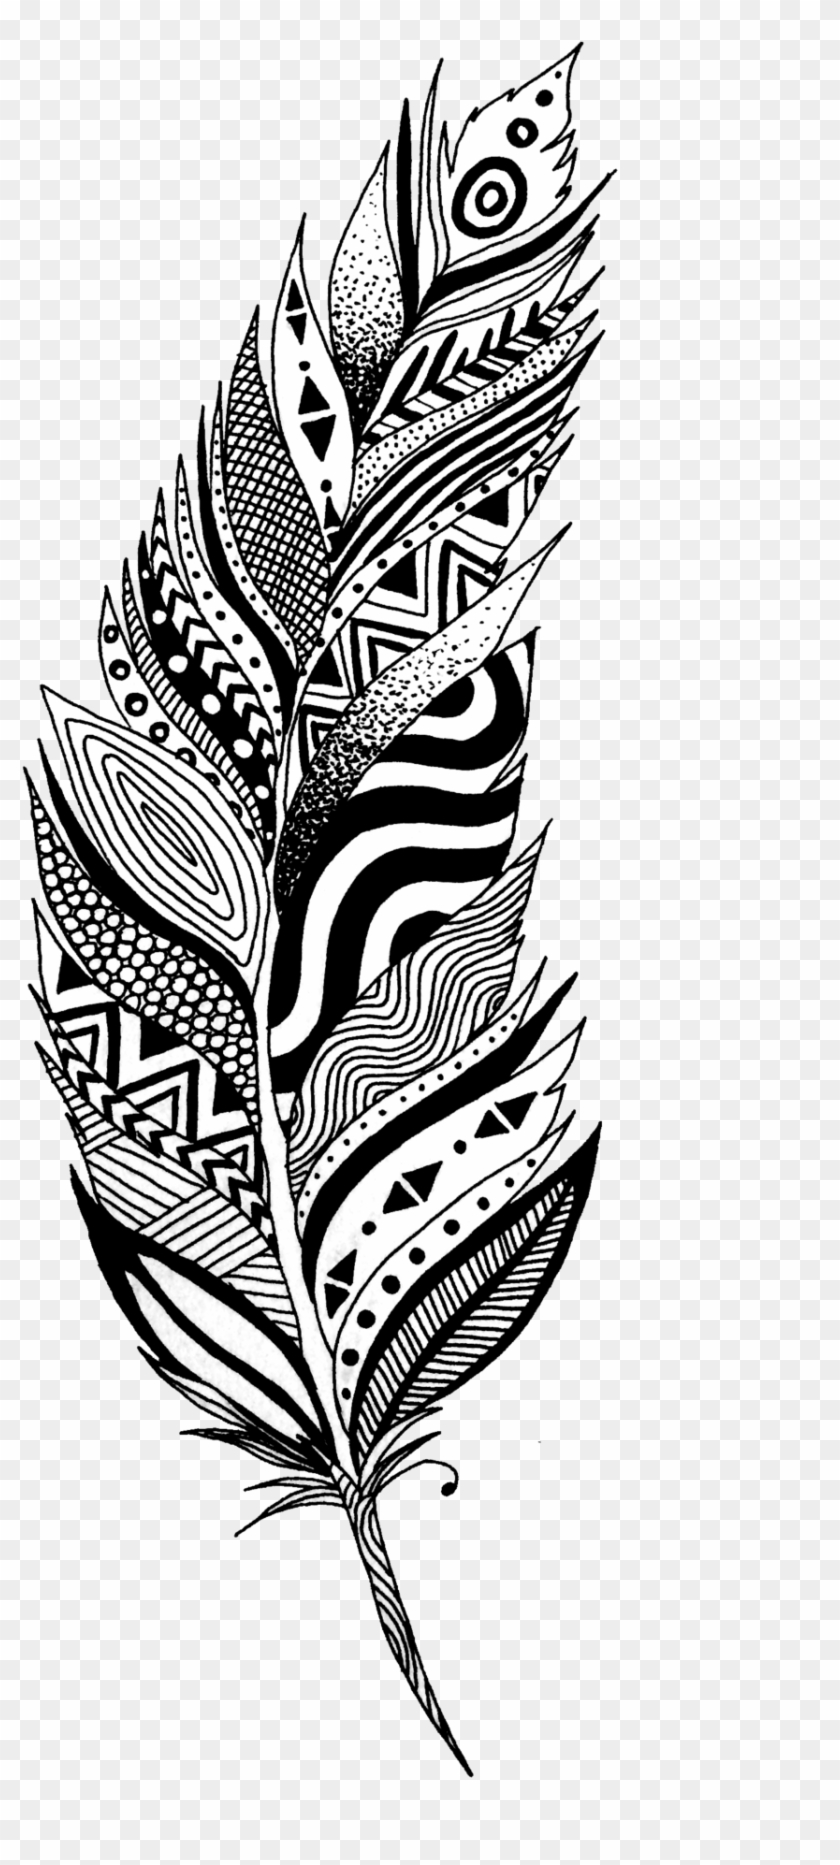 Black And White Feather Tattoo Design Black And White Feather Clipart Hd Png Download 1024x1955 6288878 Pngfind